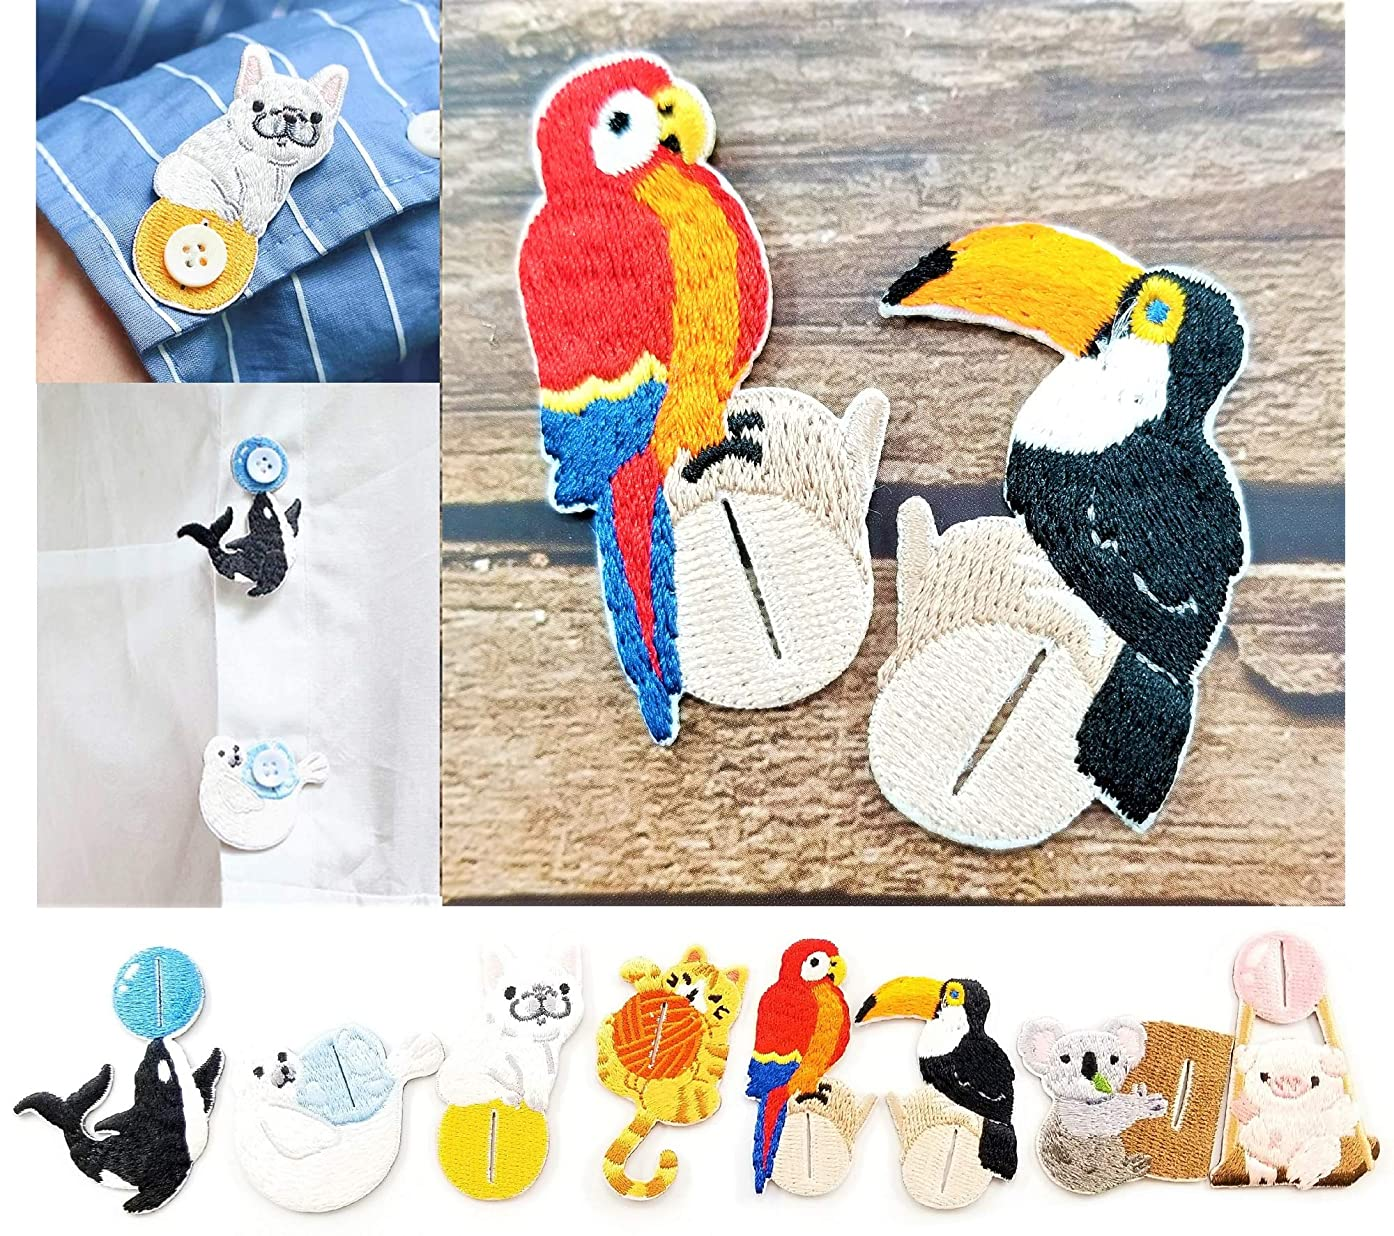 2 Pieces Embroidered Patches Shirt Button Accessories Various DIY Cloth Art Embroidery Decoration Super Cute Fashion Stylish Accessories for Kids and Adult (Scarlet Macaw & Toco Toucan)